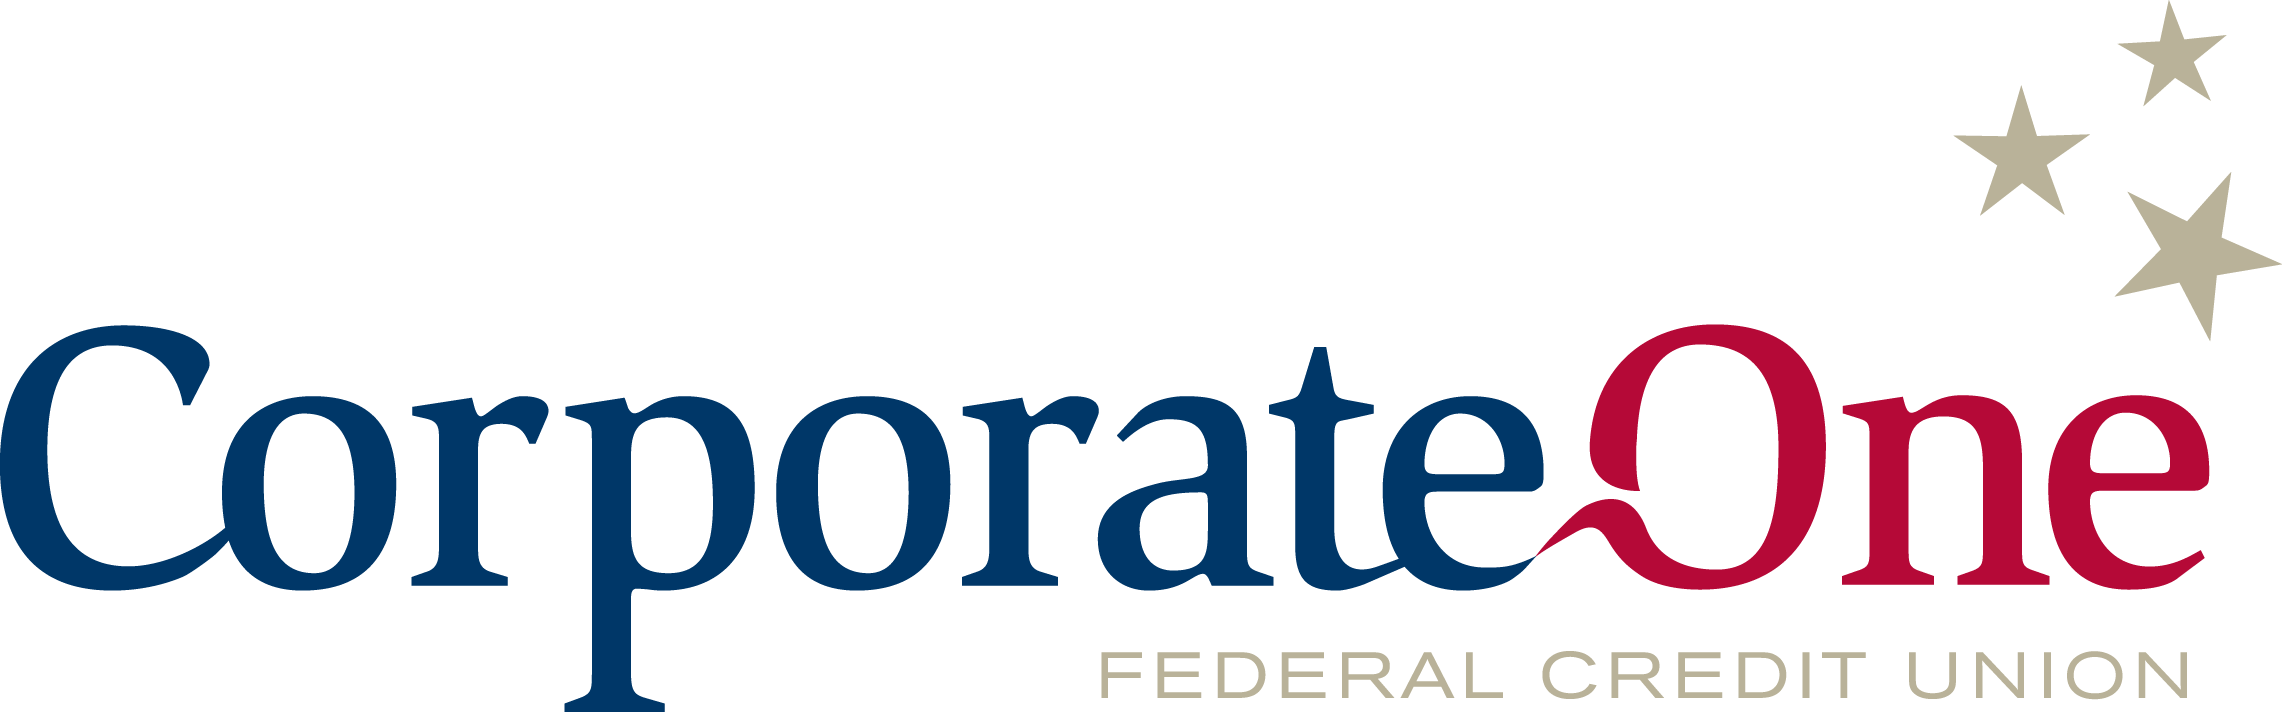 Corporate One Federal Credit Union